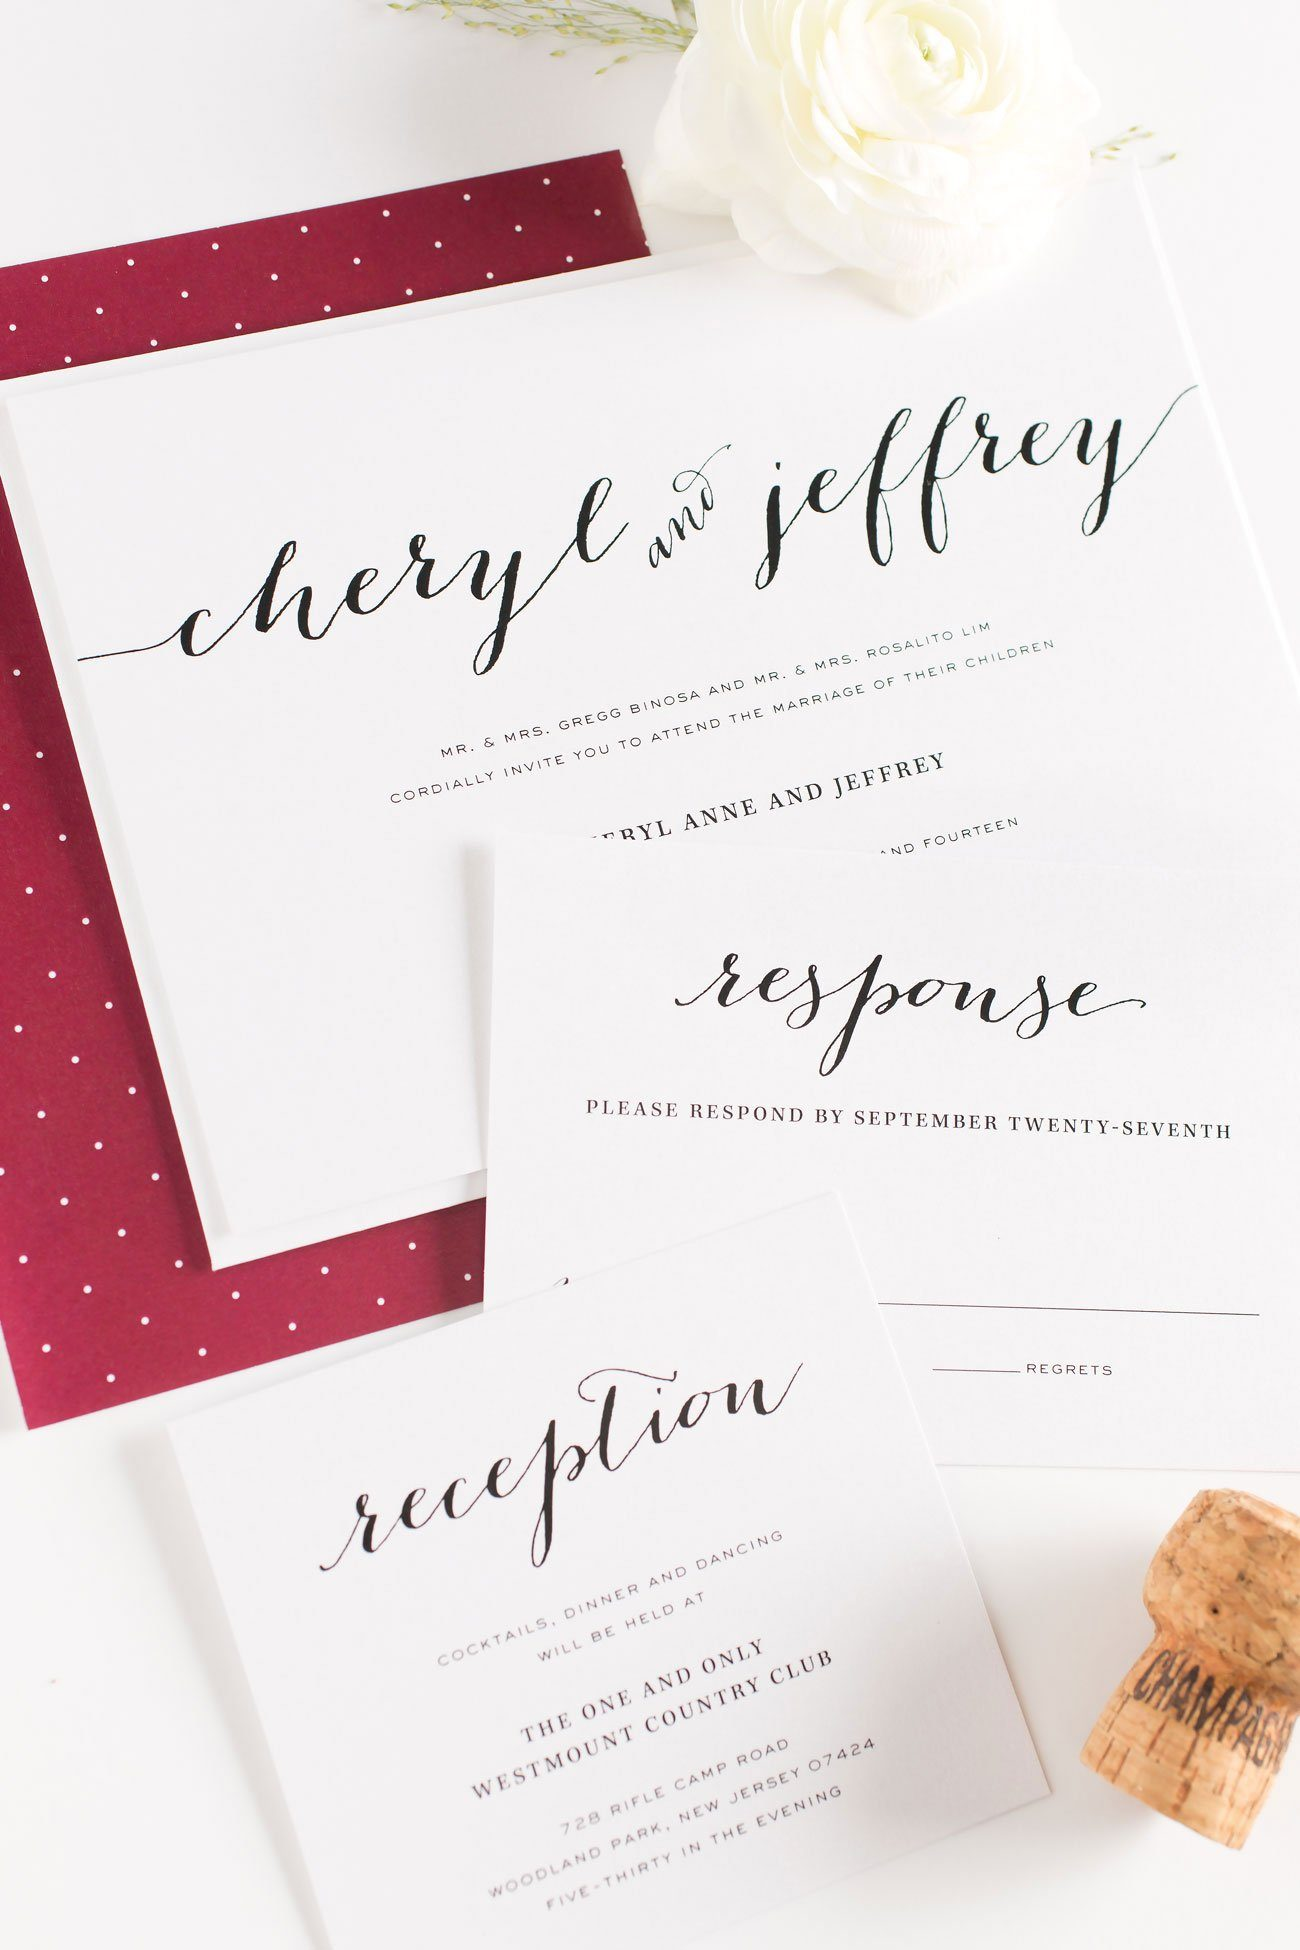 Cranberry wedding invitations with polka dots